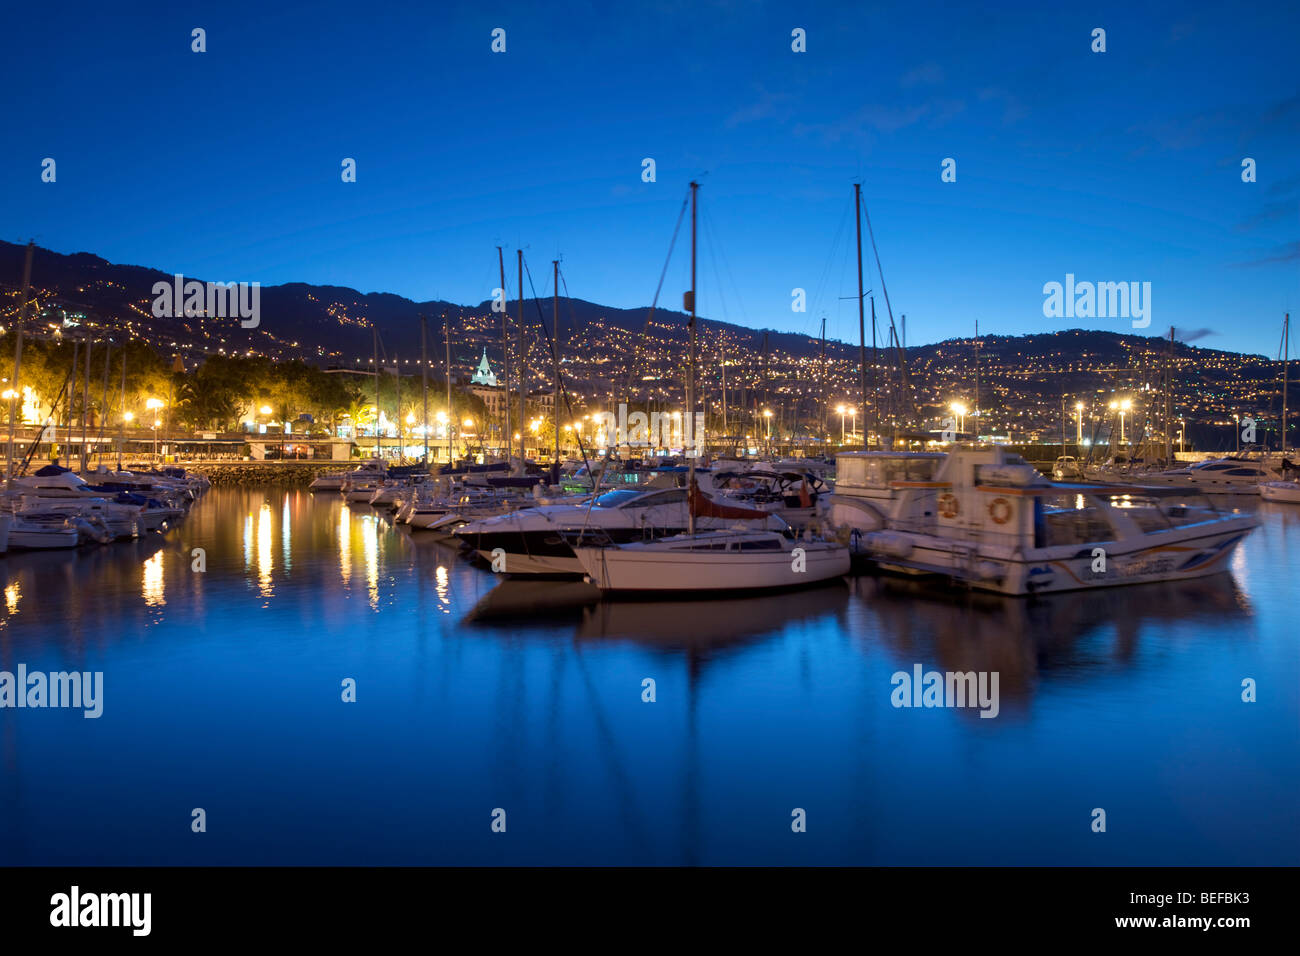 Boats in the Funchal marina in Madeira at dawn. - Stock Image